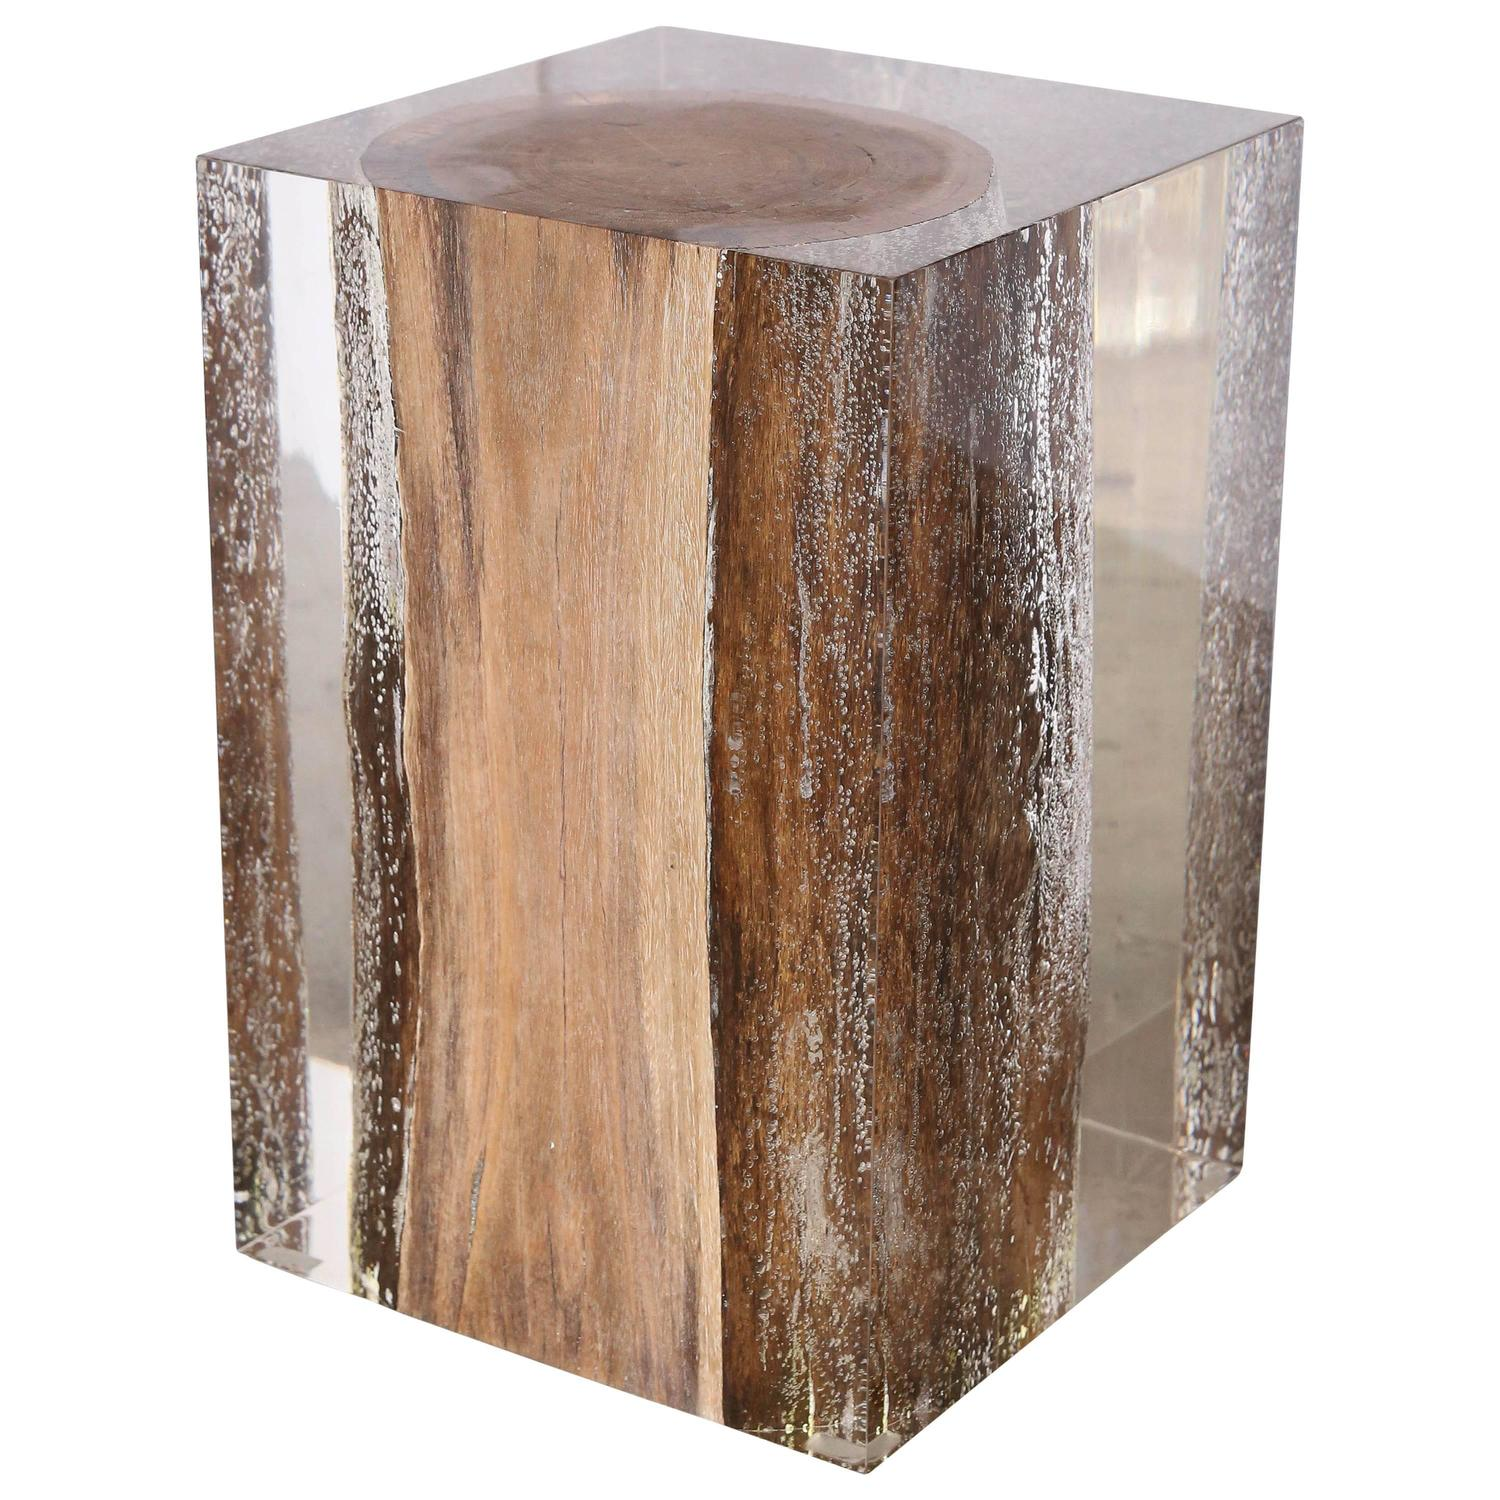 Acrylic Glass Nilleq Side Table And Stool For Sale At 1stdibs